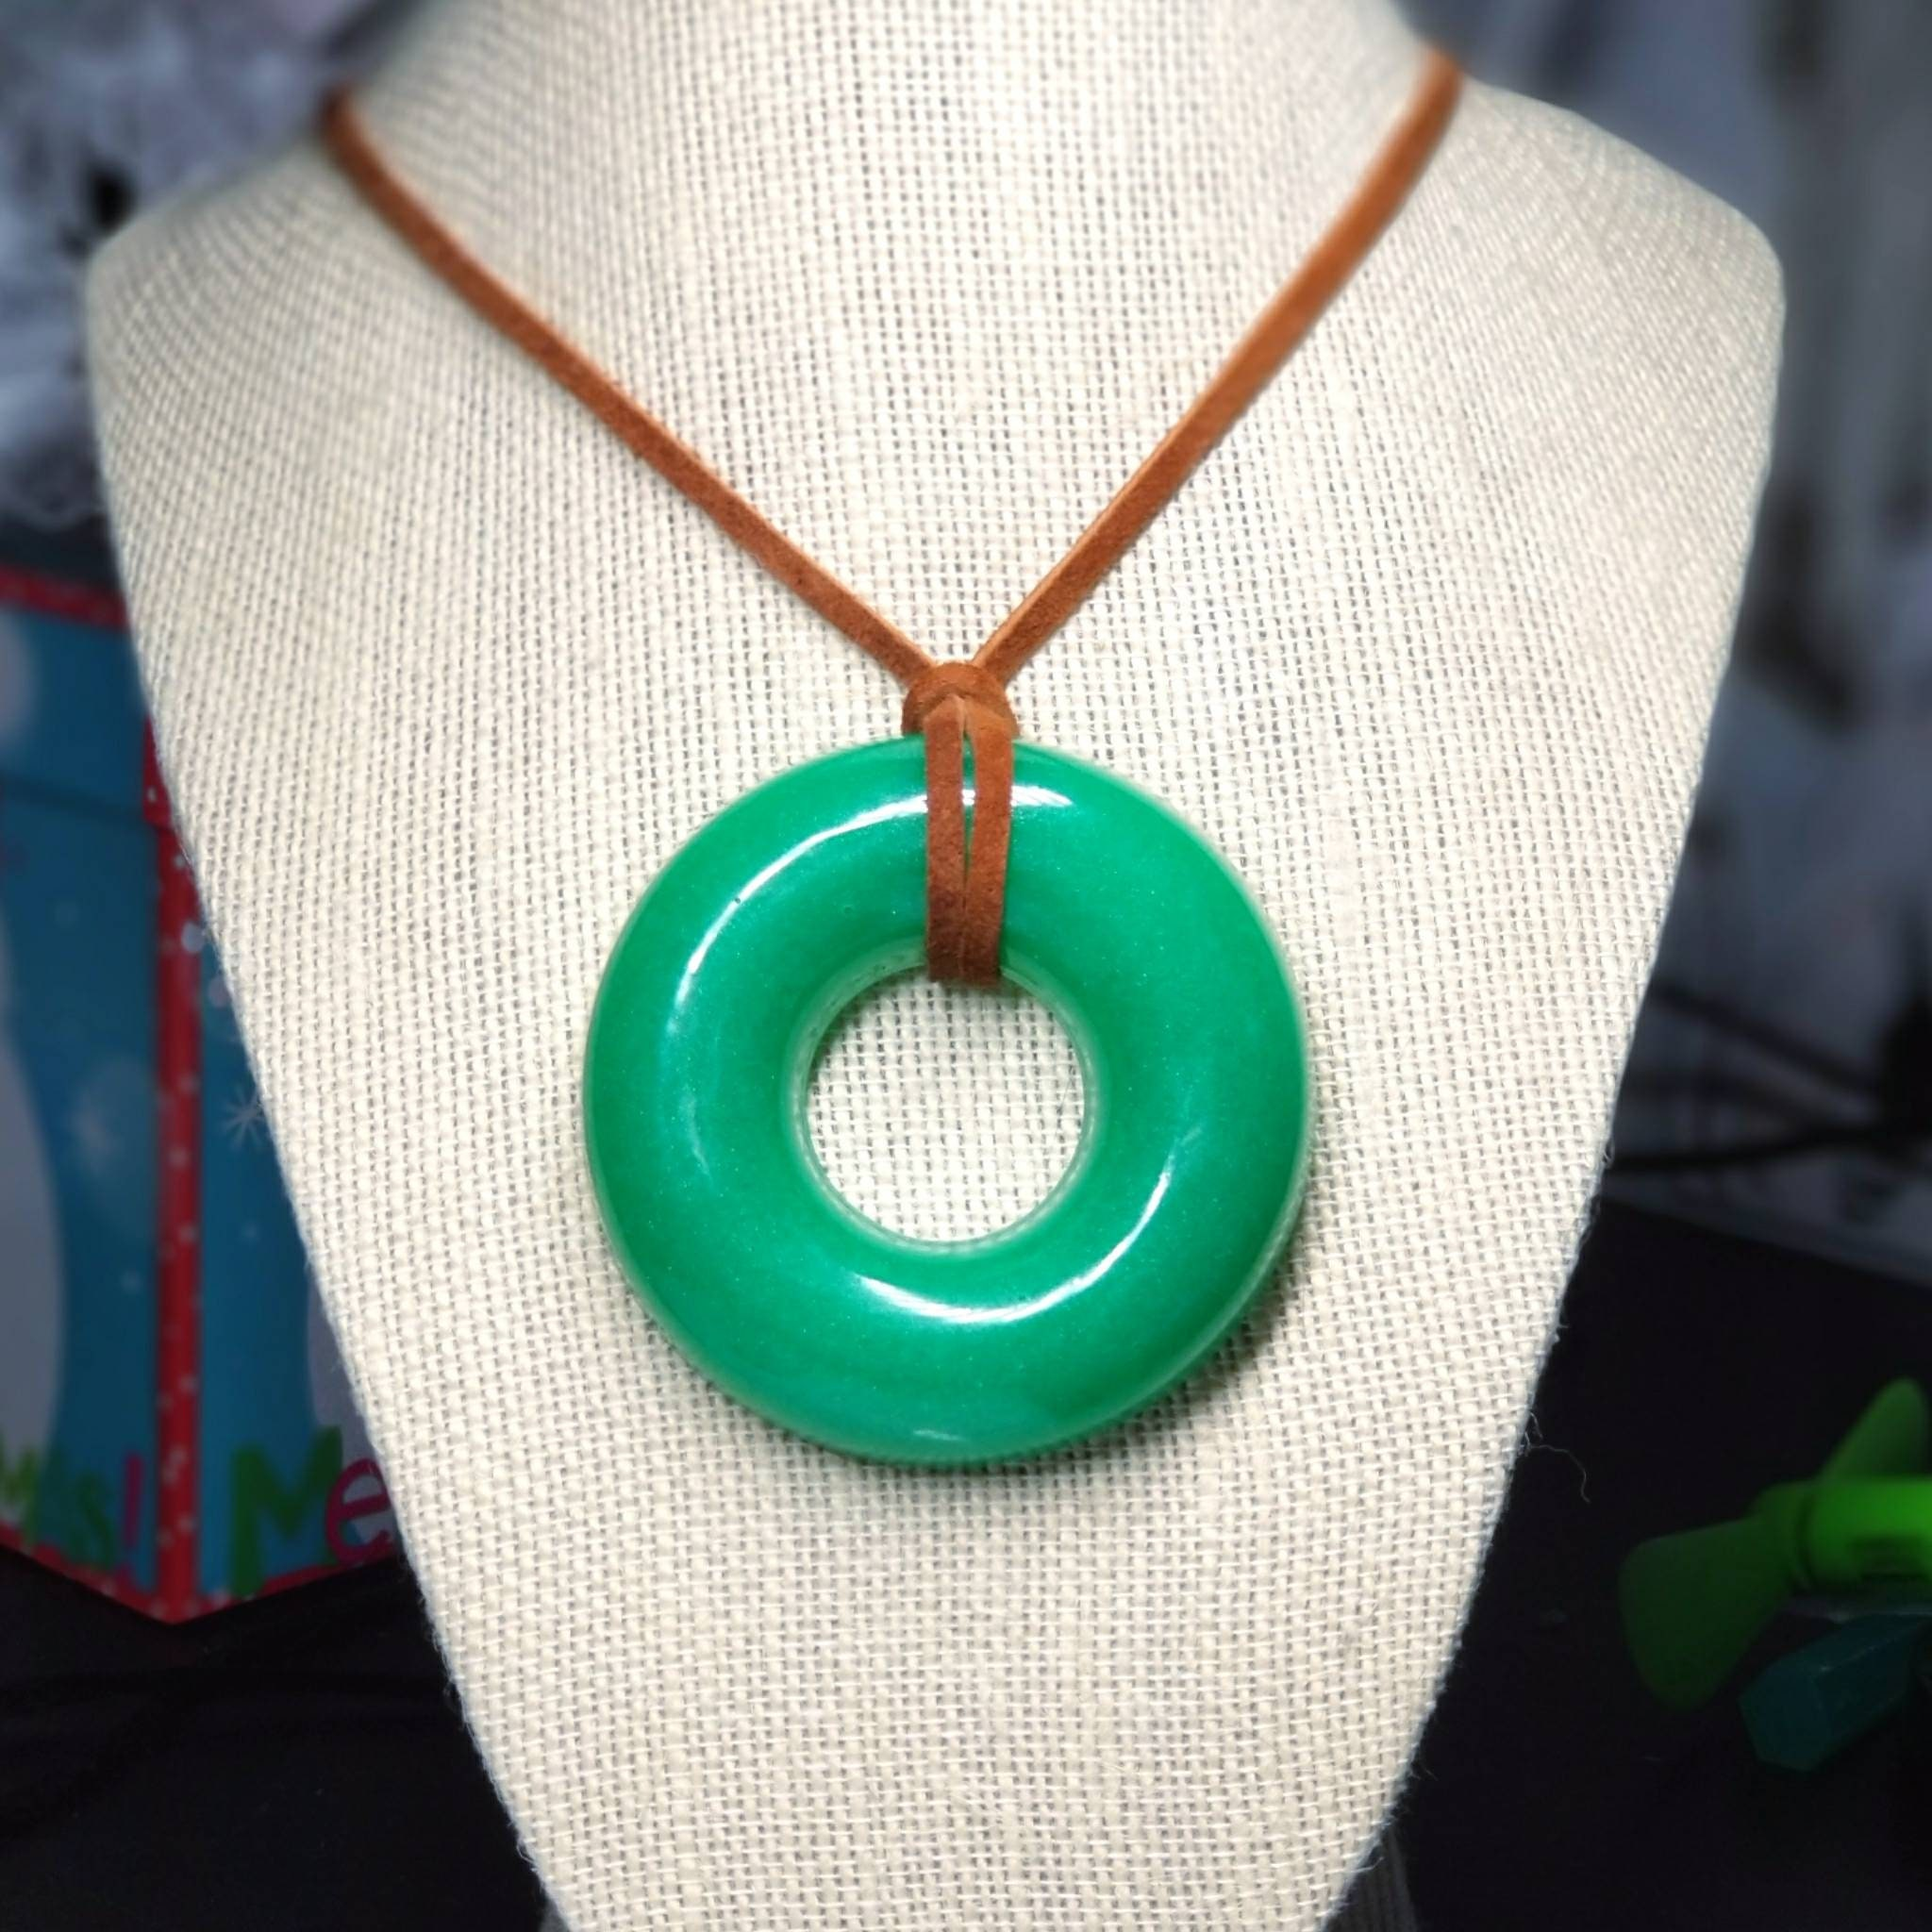 the out toki extremely a it which beautiful koru on as own also resembles new their for set s blog symbolises fitting is life journey children child necklace jade they buying necklaces